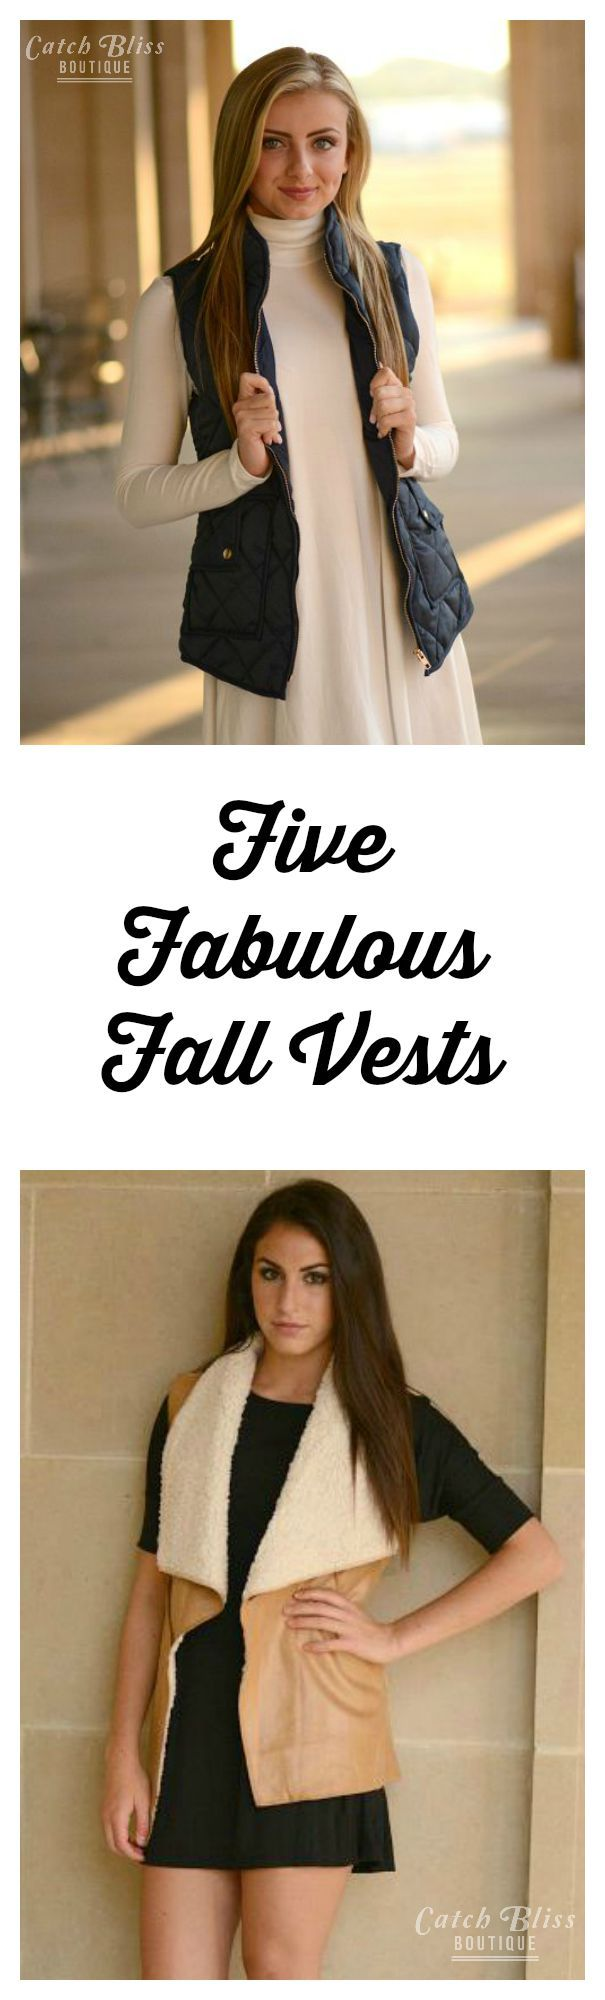 Five fabulous fall vests. Each vest is comfortable and stylishly warm.  There are endless styling options with each vest. Stay warm and stylish this season. See our entire fall vest collection! Free shipping on orders $50 and over!